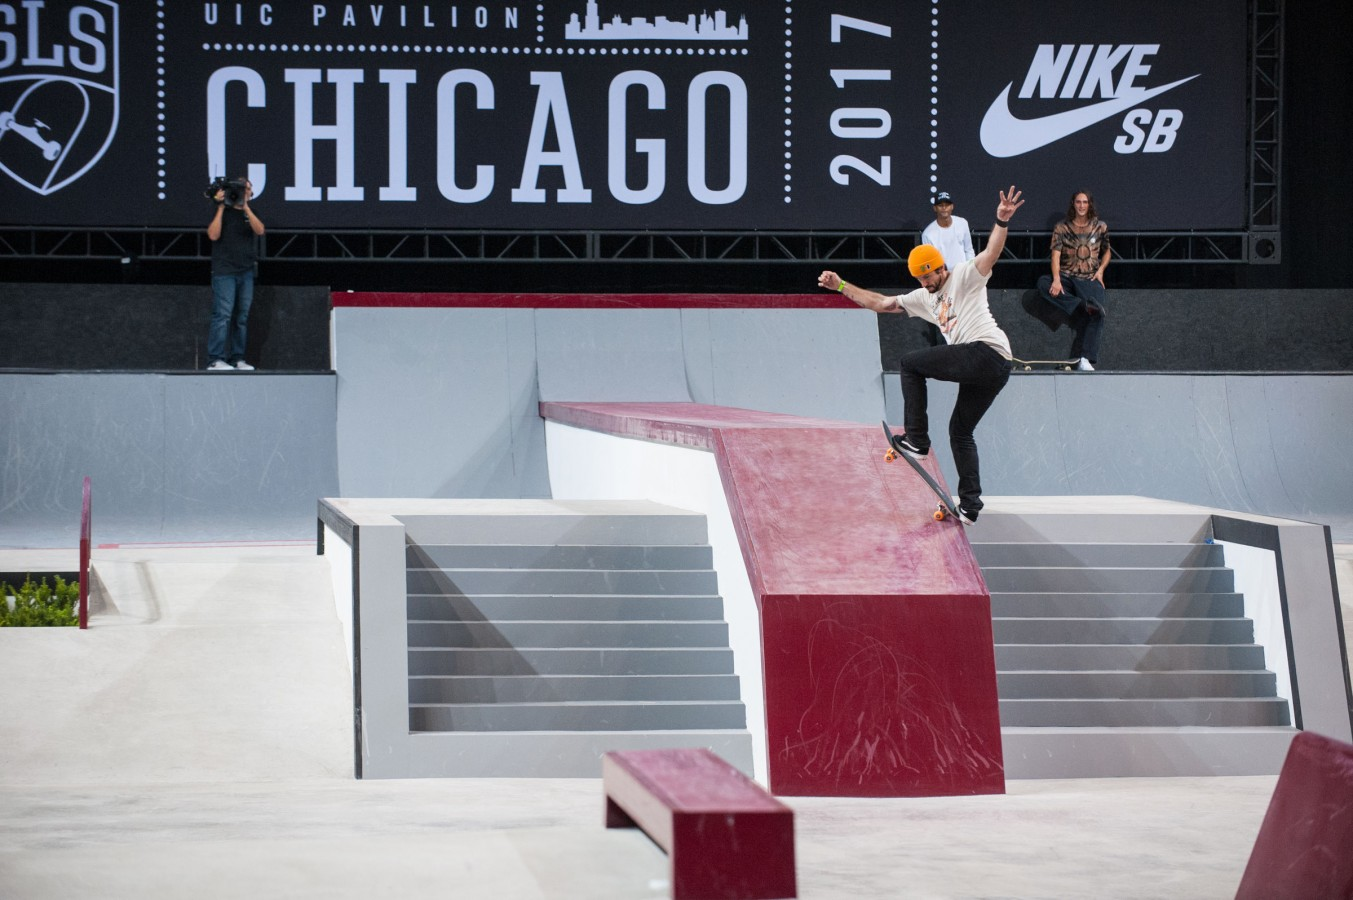 Image from the 2017 Street League Series in Chicago, IL